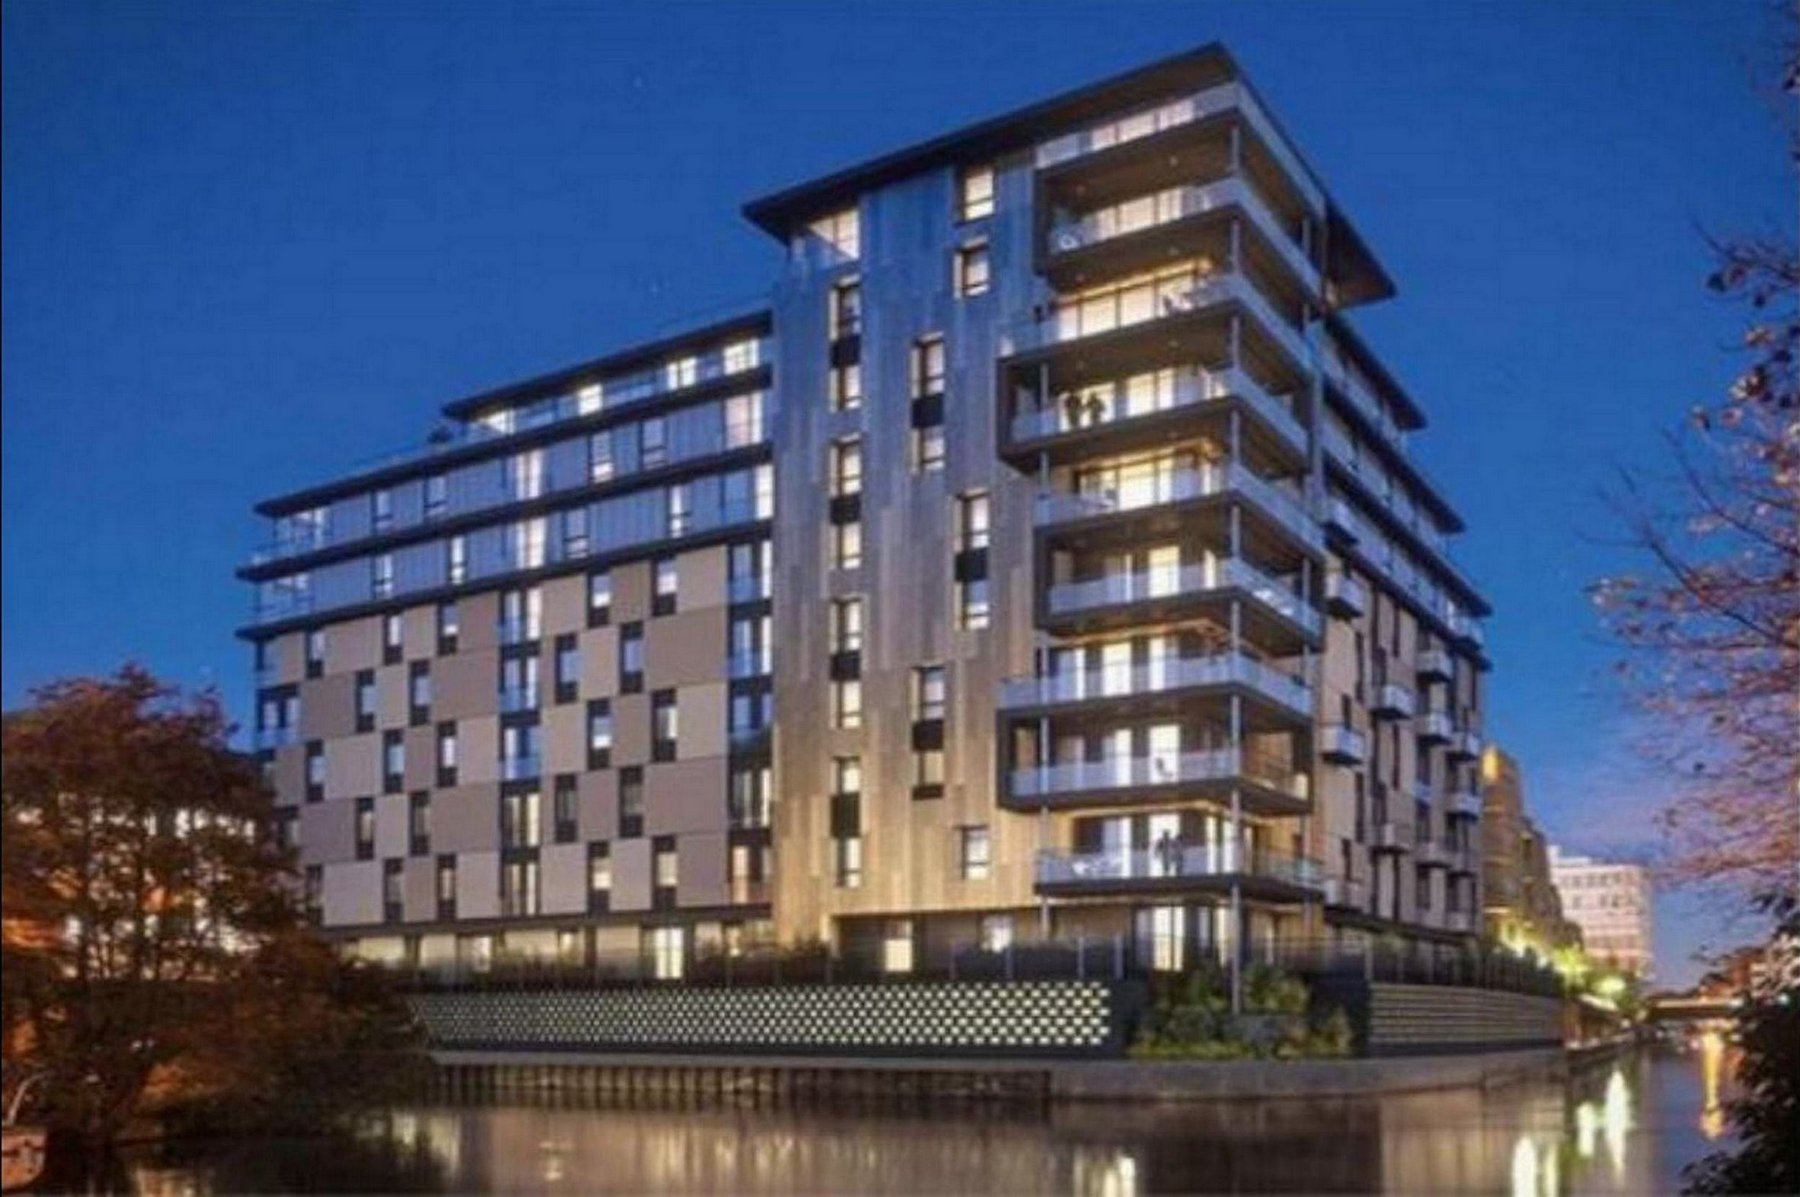 Exterior for Kennet House Serviced Apartments, Centre, Reading - Citybase Apartments